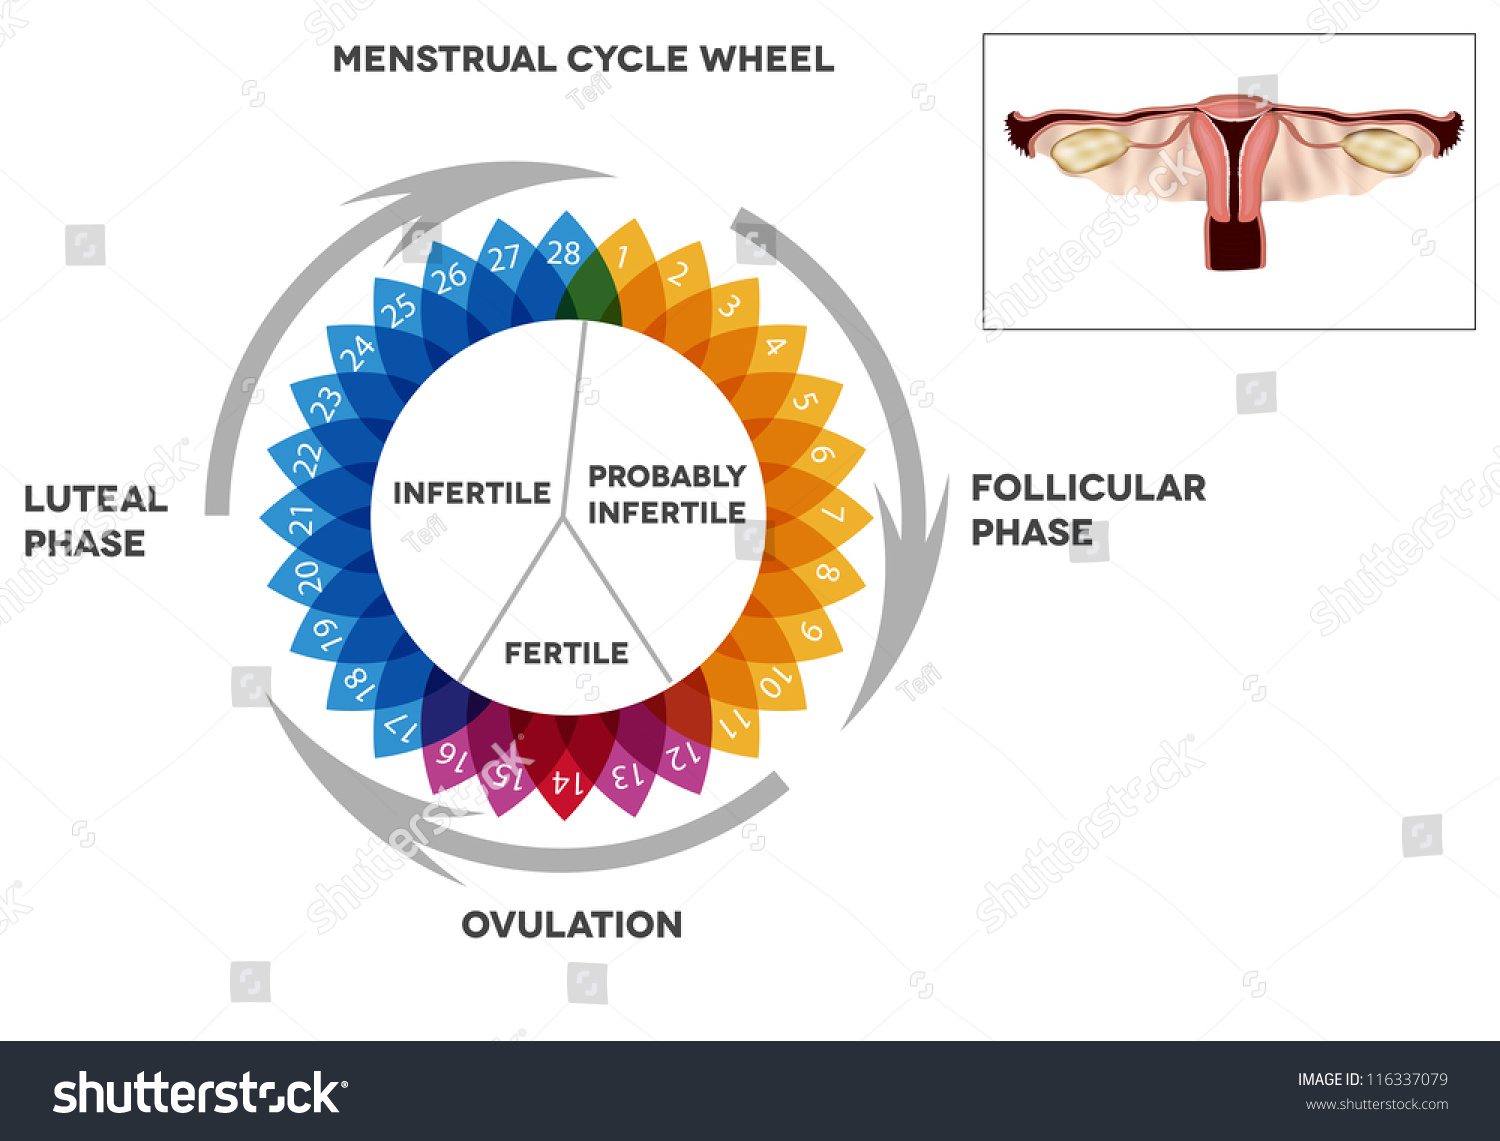 Menstrual cycle calendar detailed diagram female stock vector detailed diagram of female menstrual cycle period illustrated female reproductive organs pooptronica